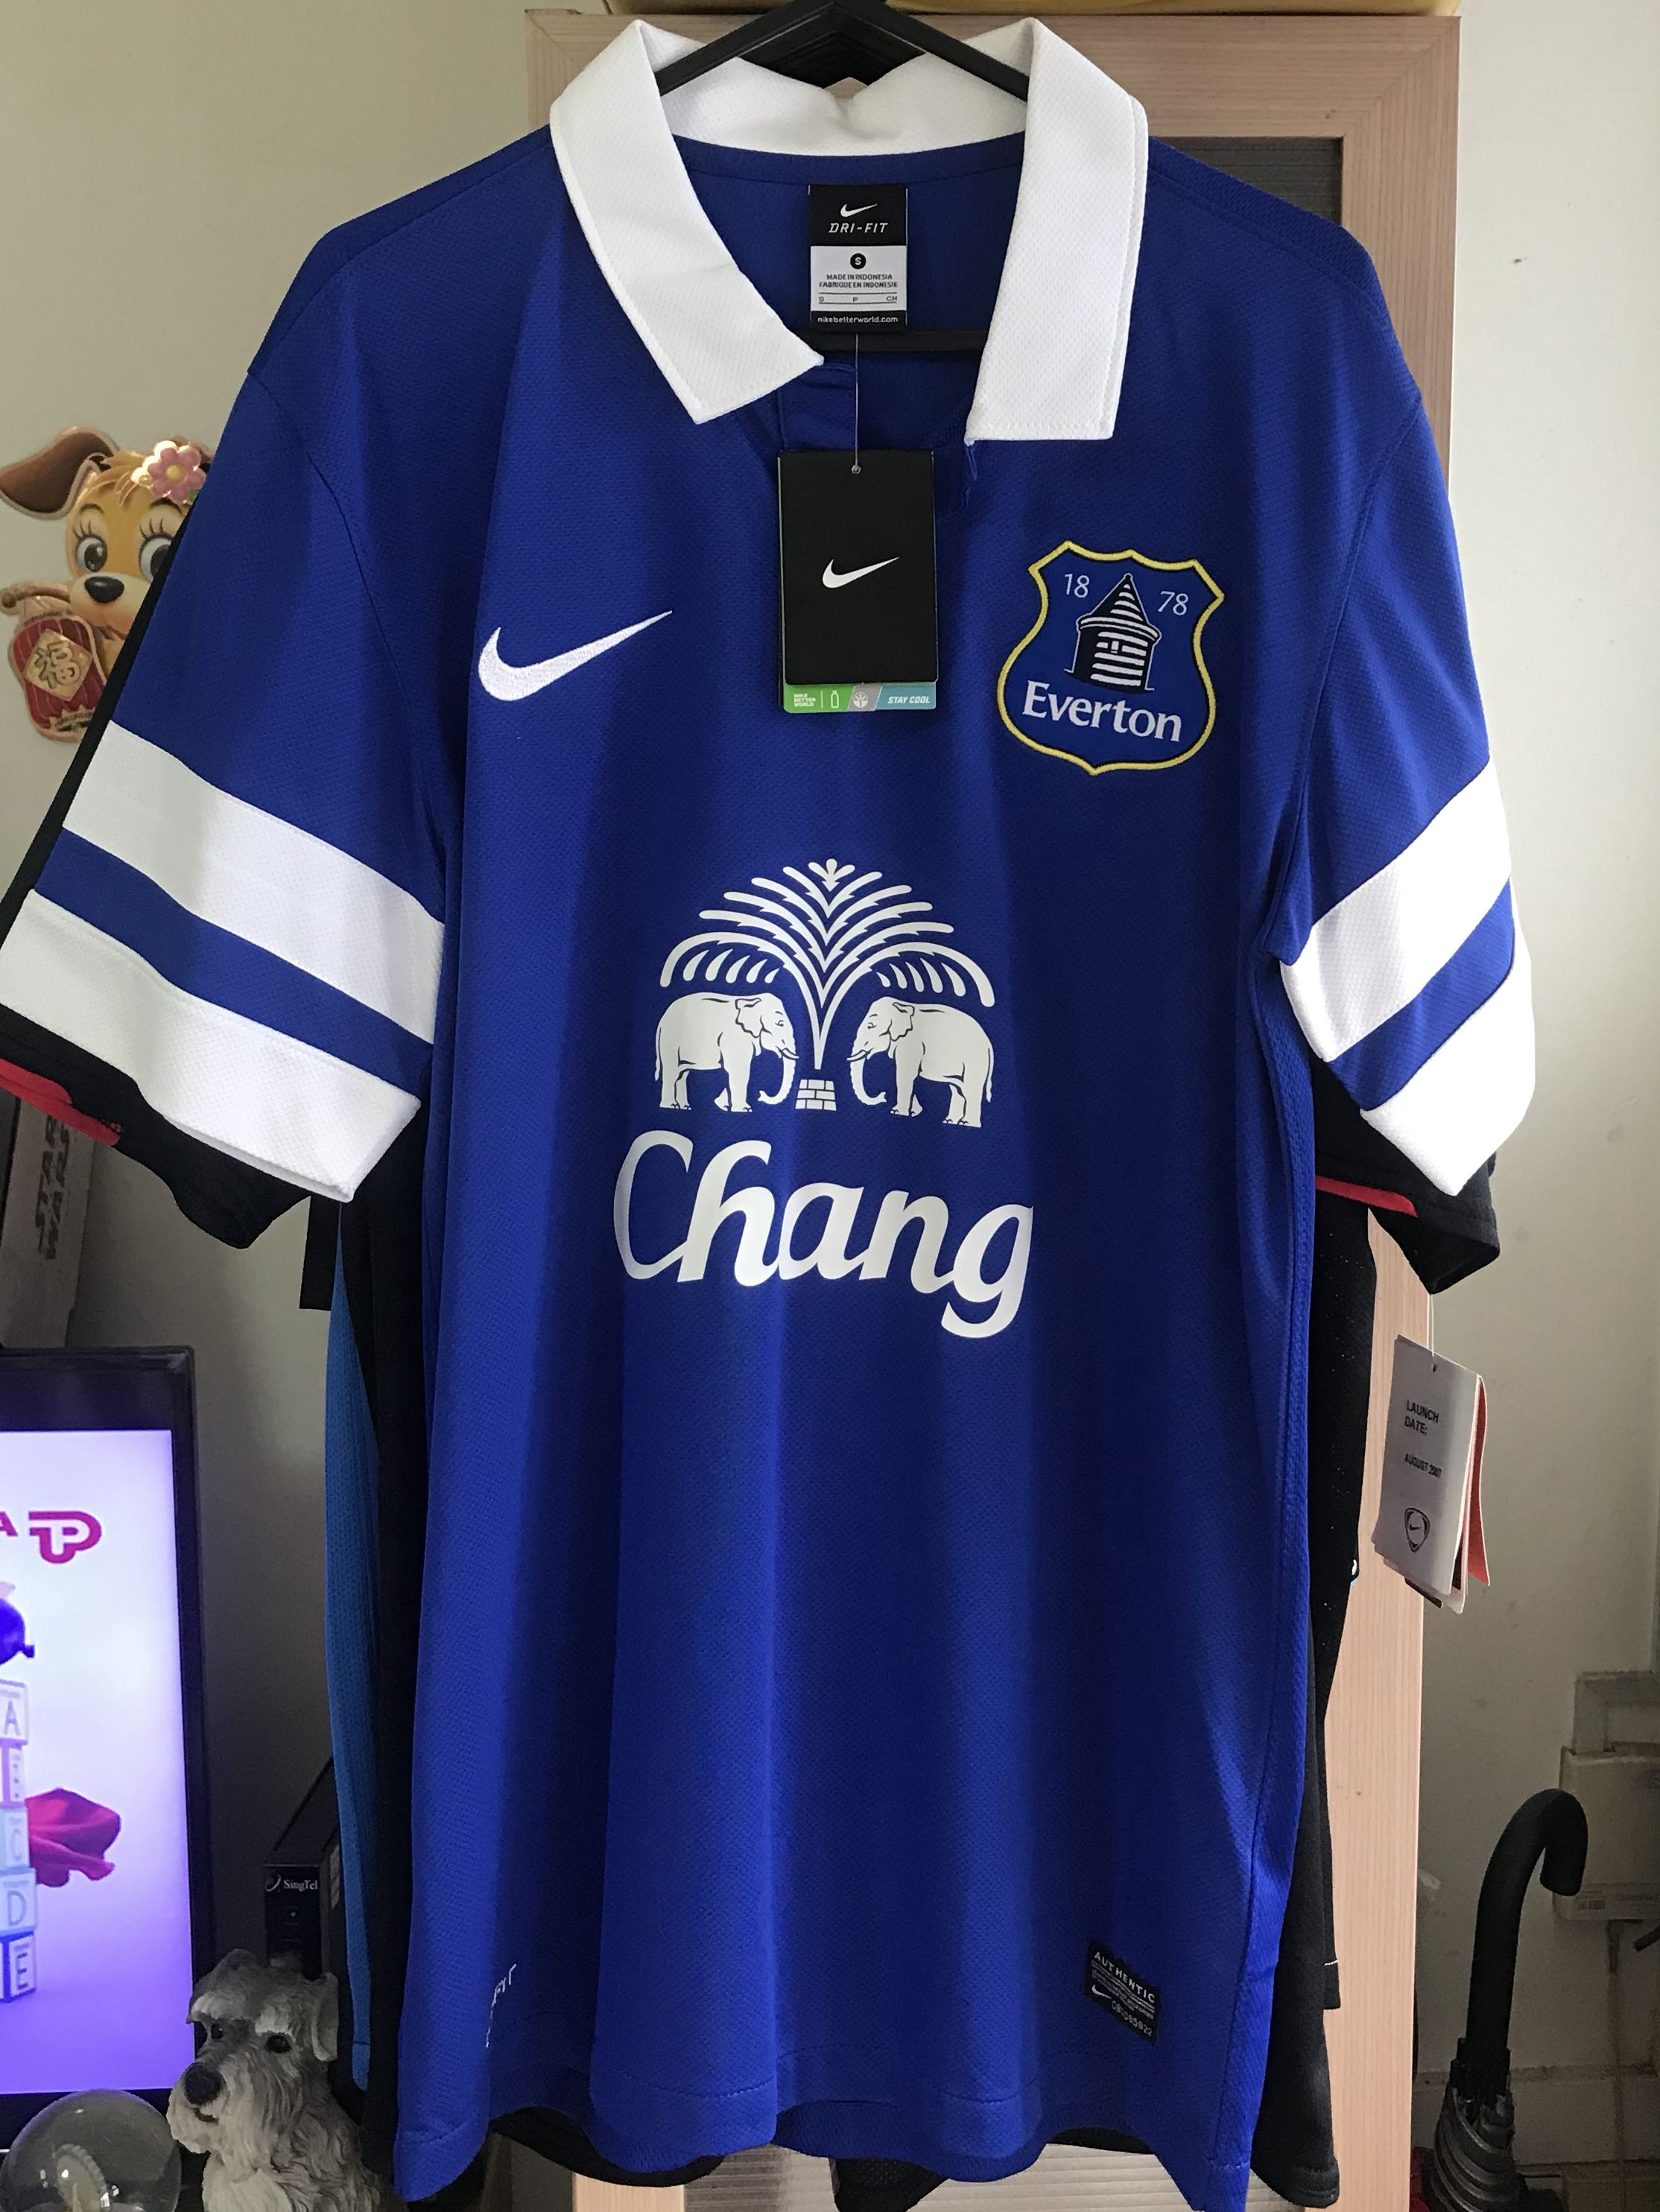 info for 1b59f 472a5 Everton Jersey Size S Player Issue